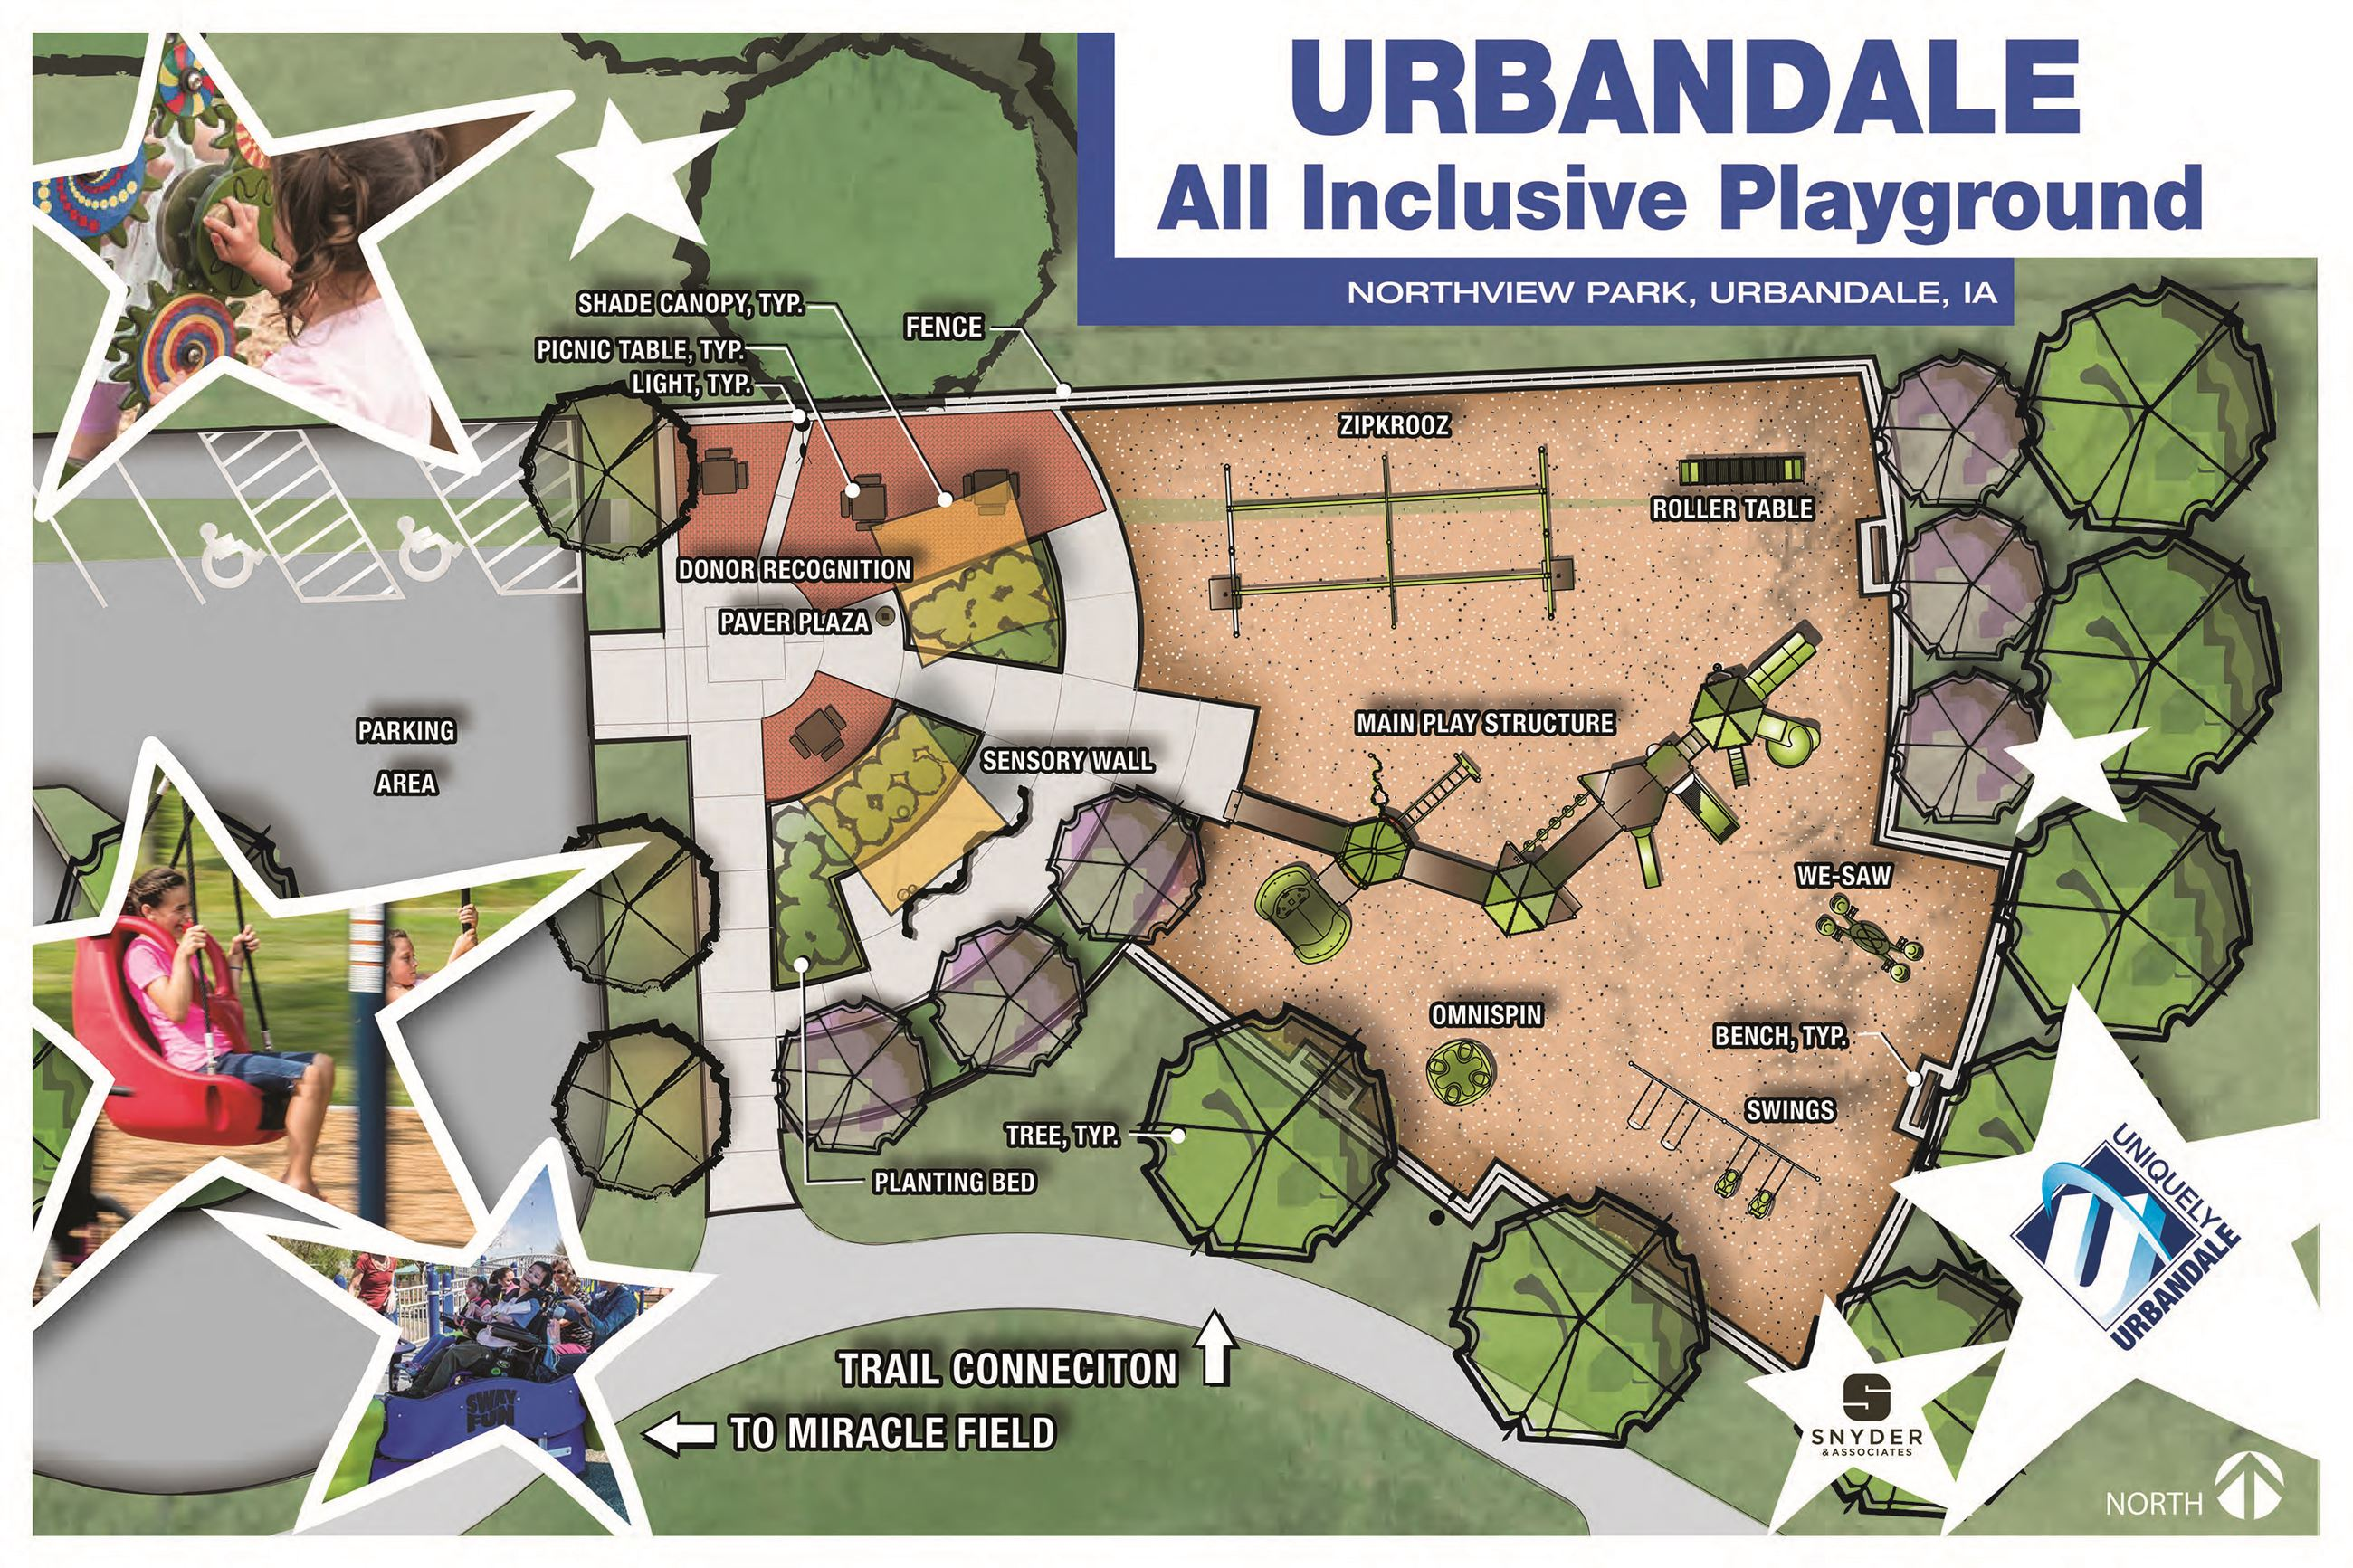 Urbandale-Inclusive Playground Sketch